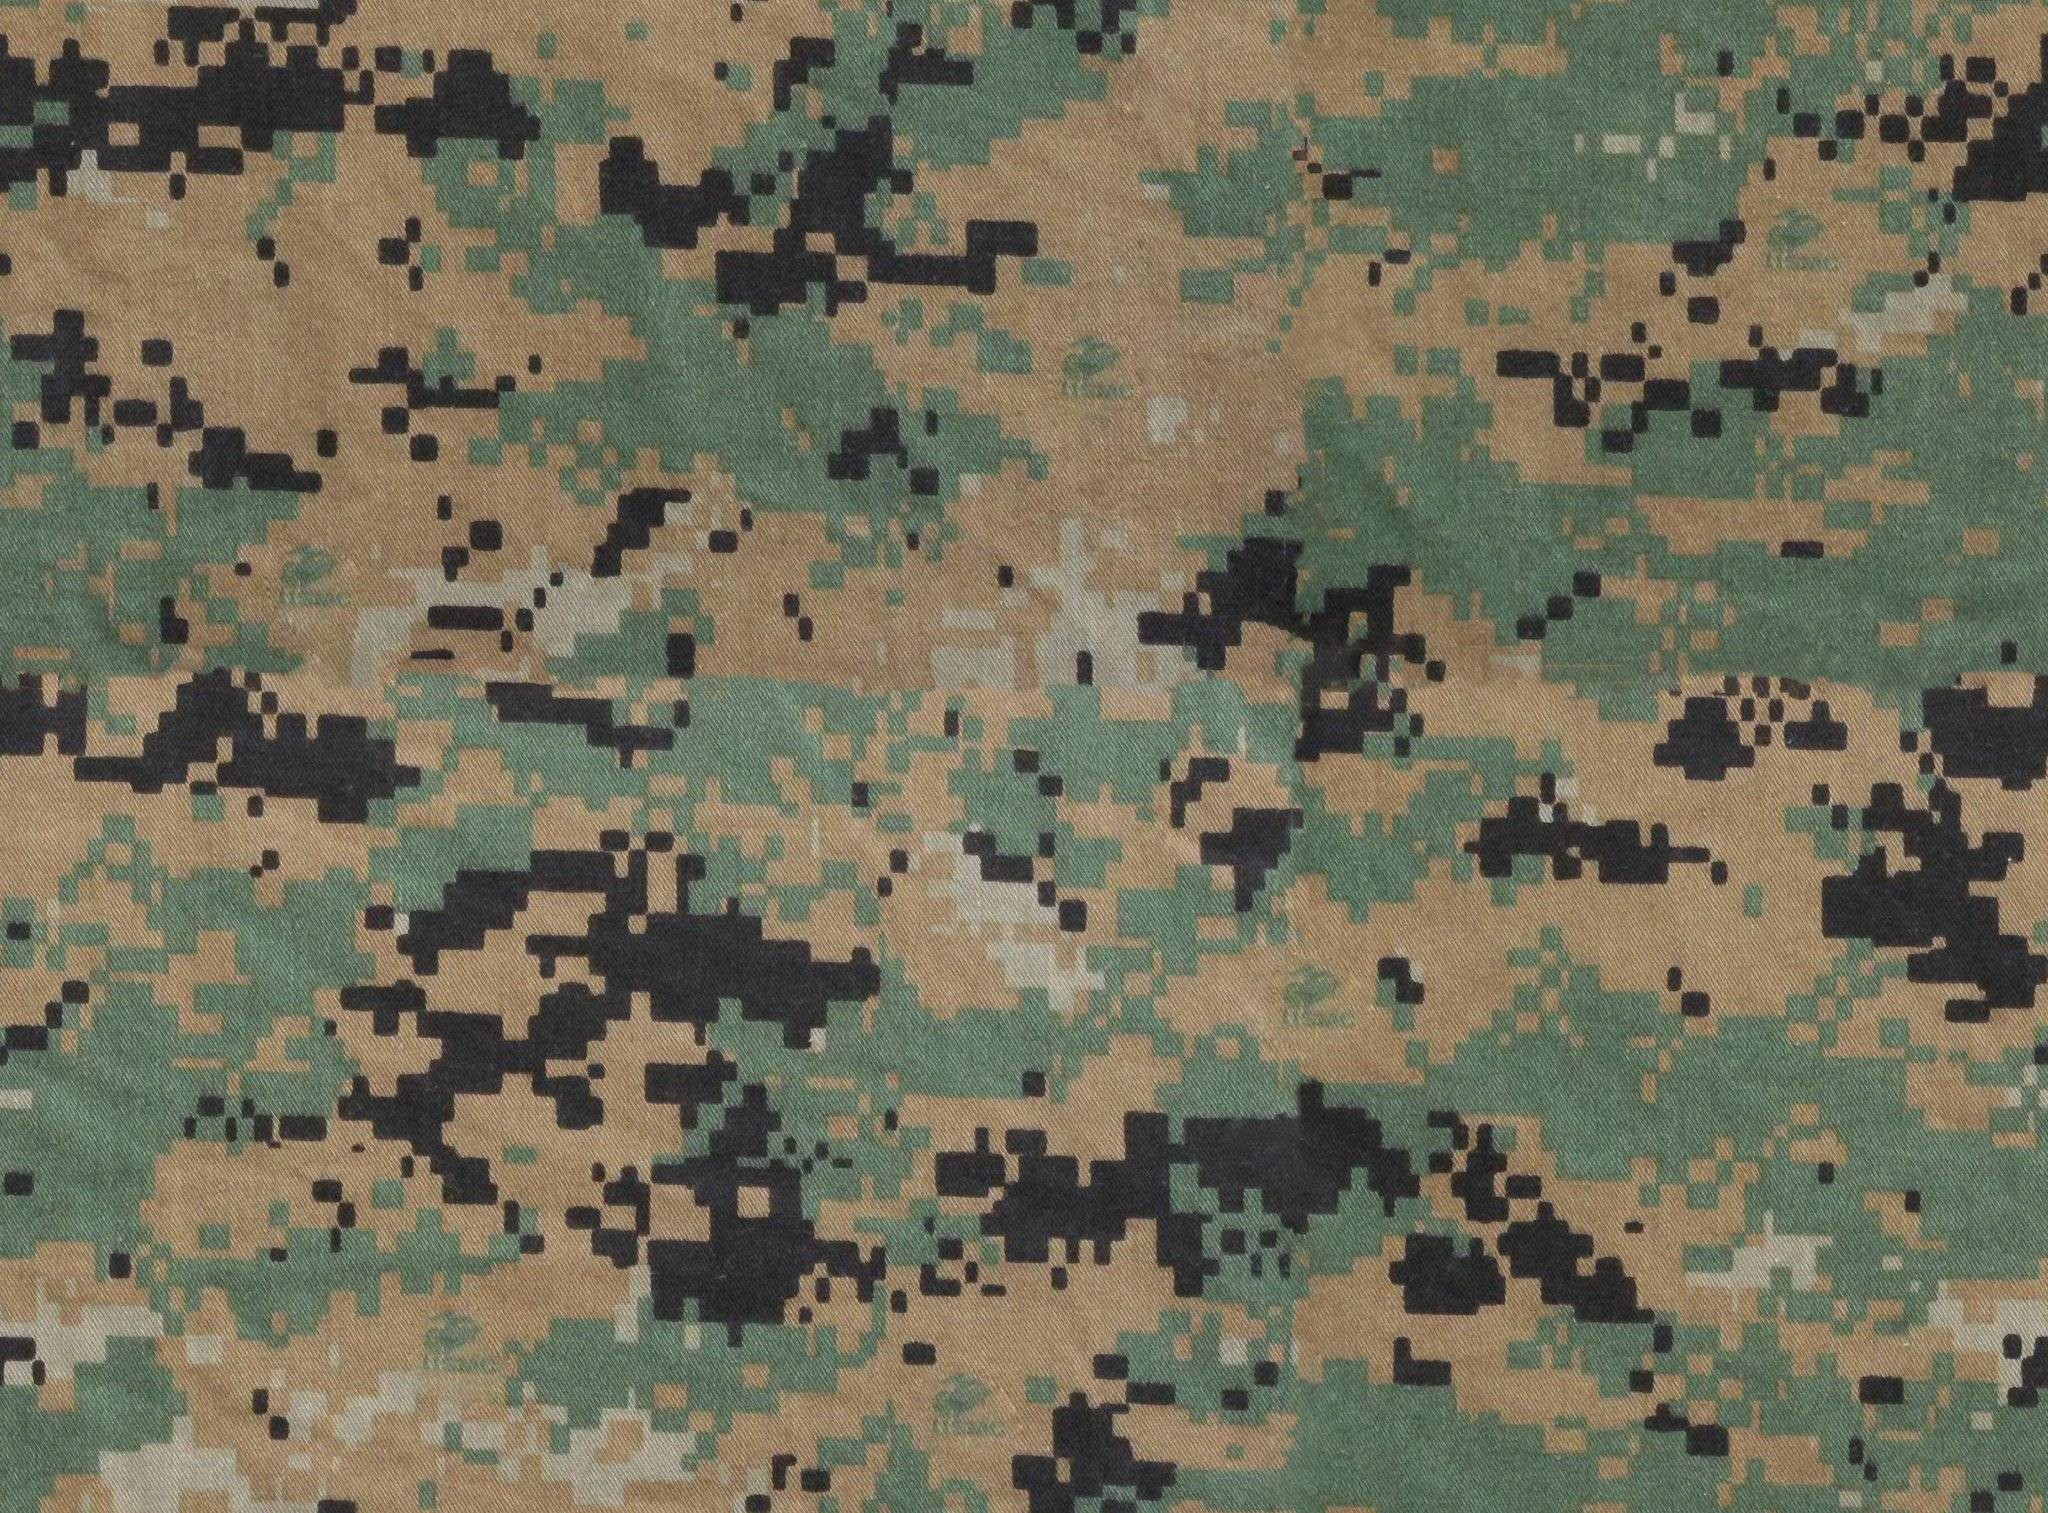 Woodland MARPAT Seamless by signcrafter on DeviantArt